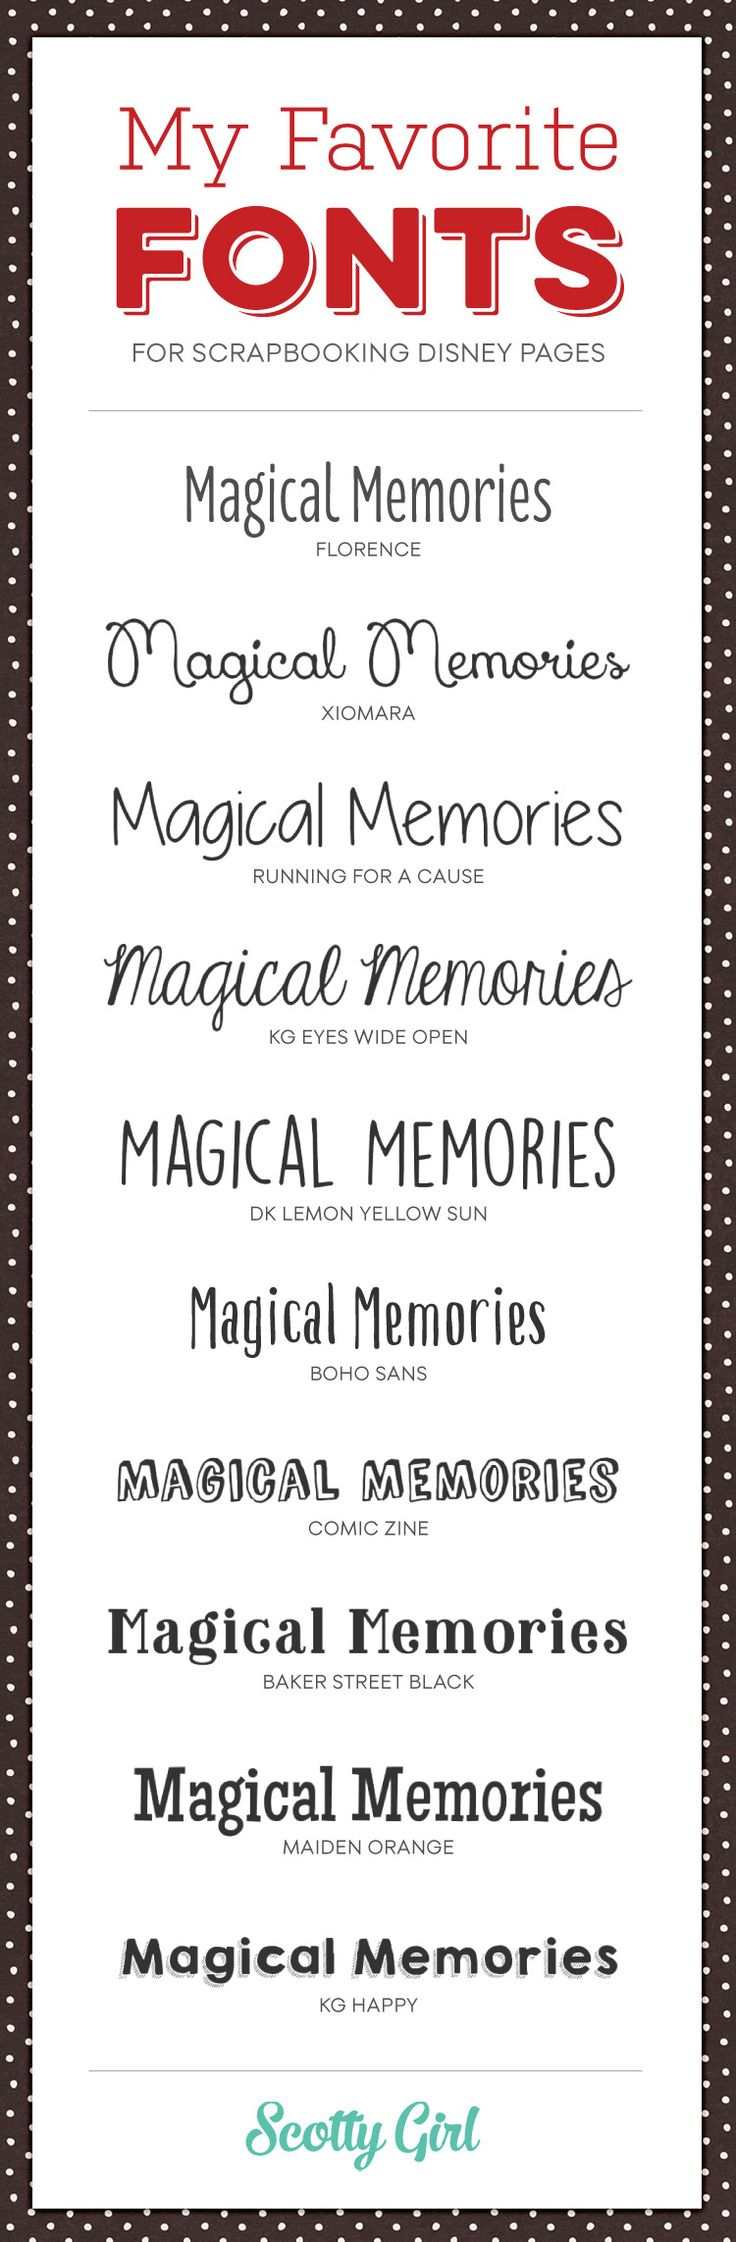 10 Favorite Fonts for Scrapbooking Your Disney Pages | scottygirldesign.com #typography #disneyscrapbooking